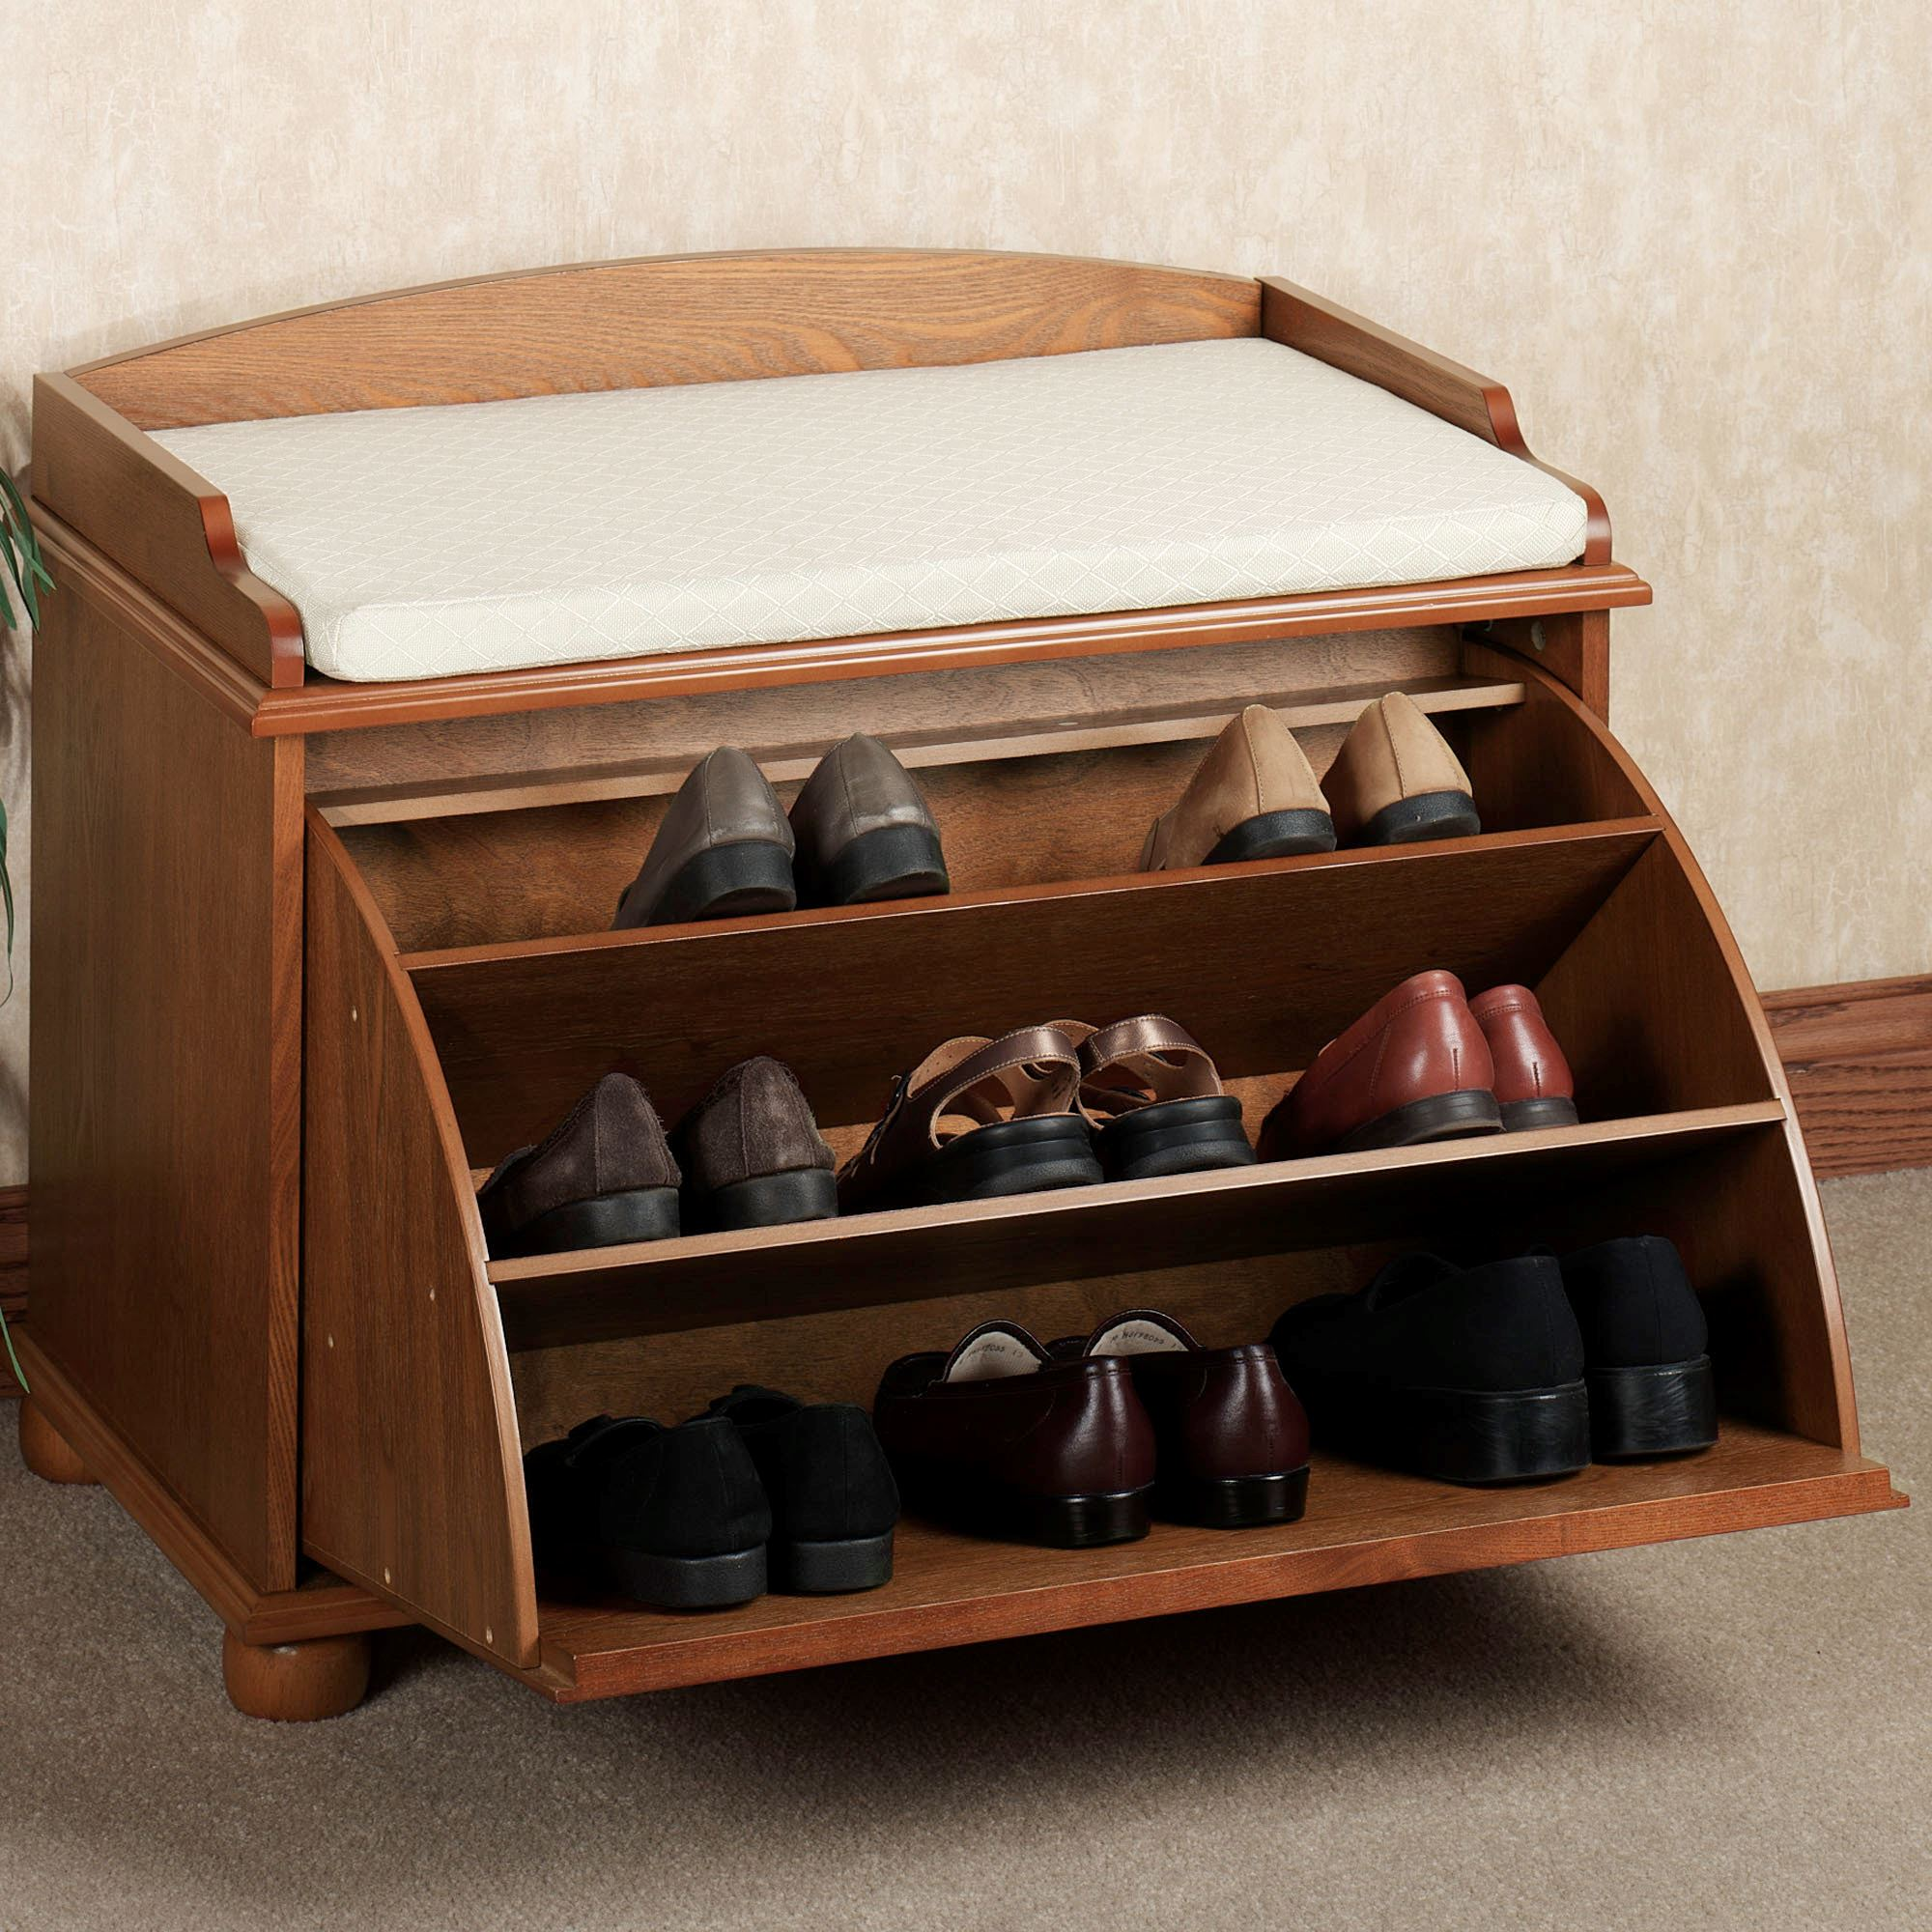 Ayden Shoe Storage Bench. Touch to zoom & Ayden Shoe Storage Bench